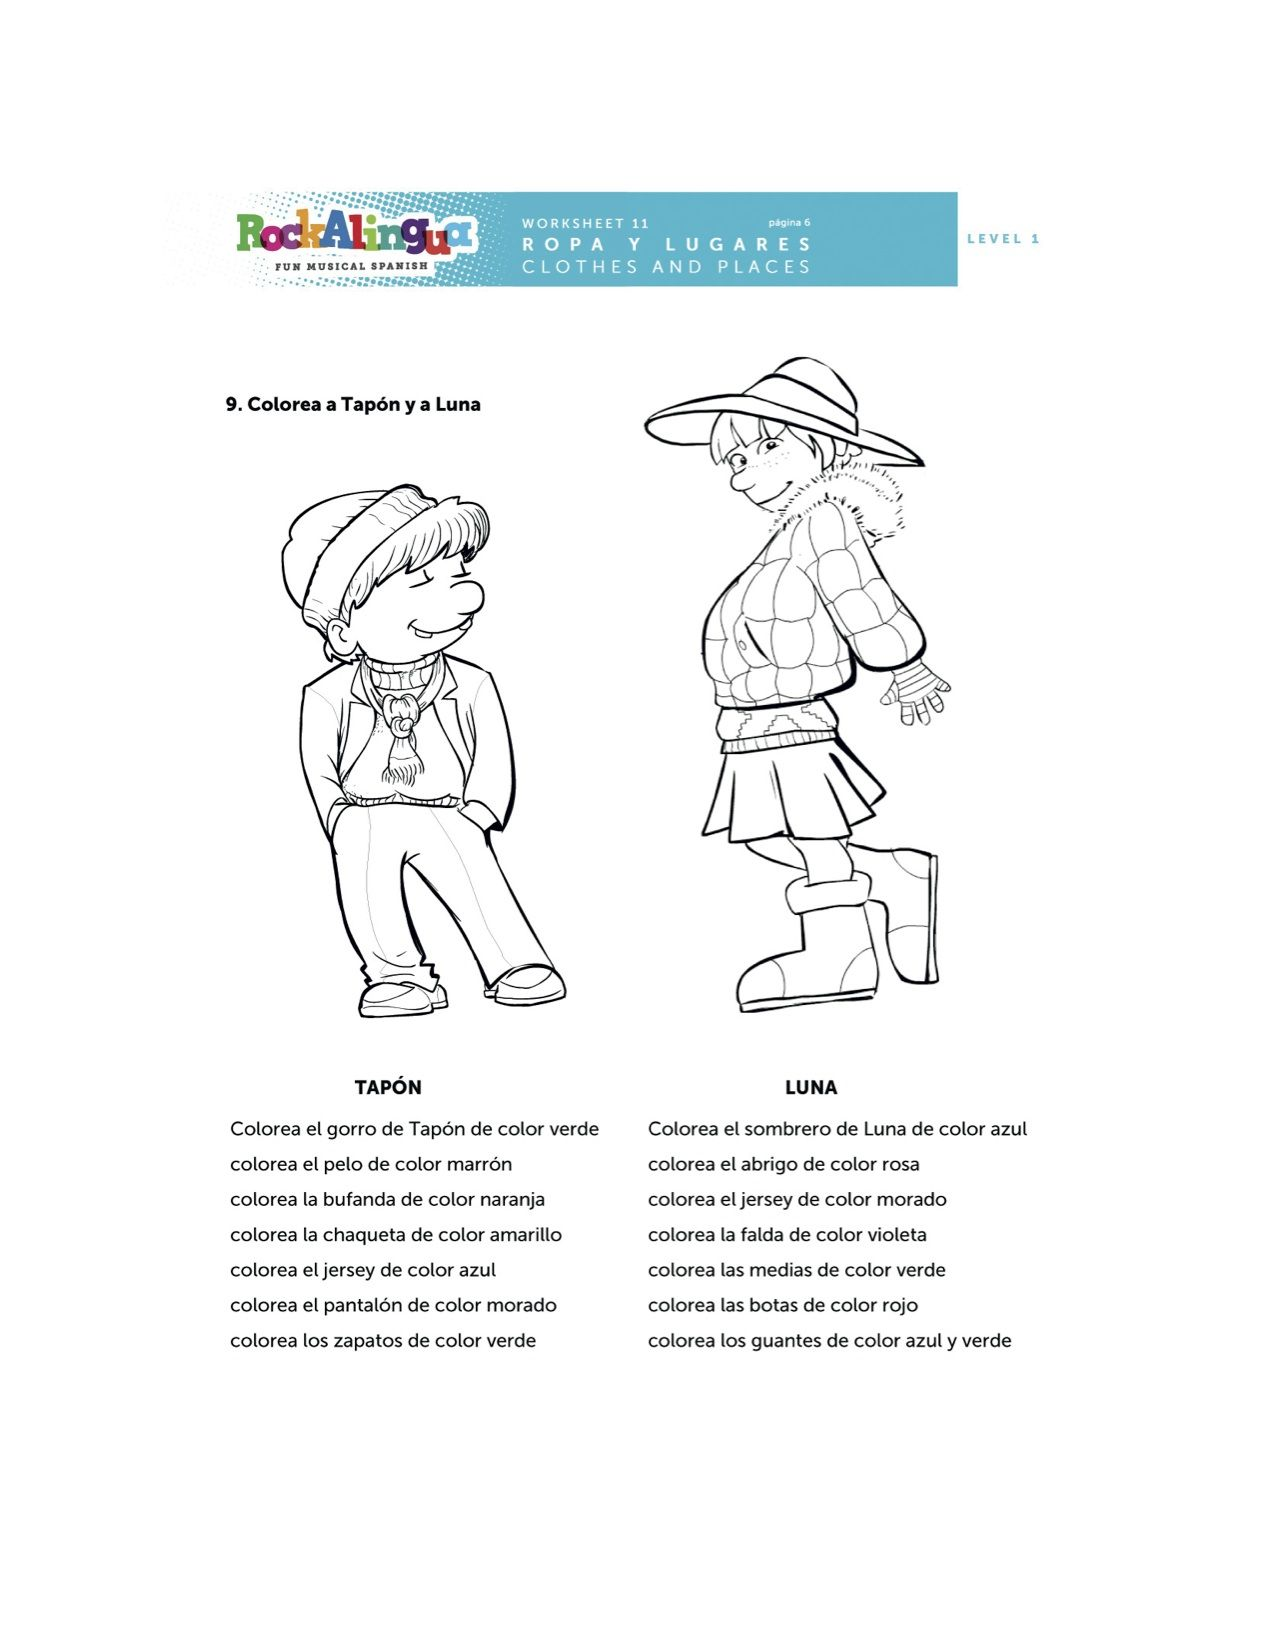 worksheet Spanish Vocabulary Worksheets spanish worksheet about clothes places and weather more teaching resources at www rockalingua